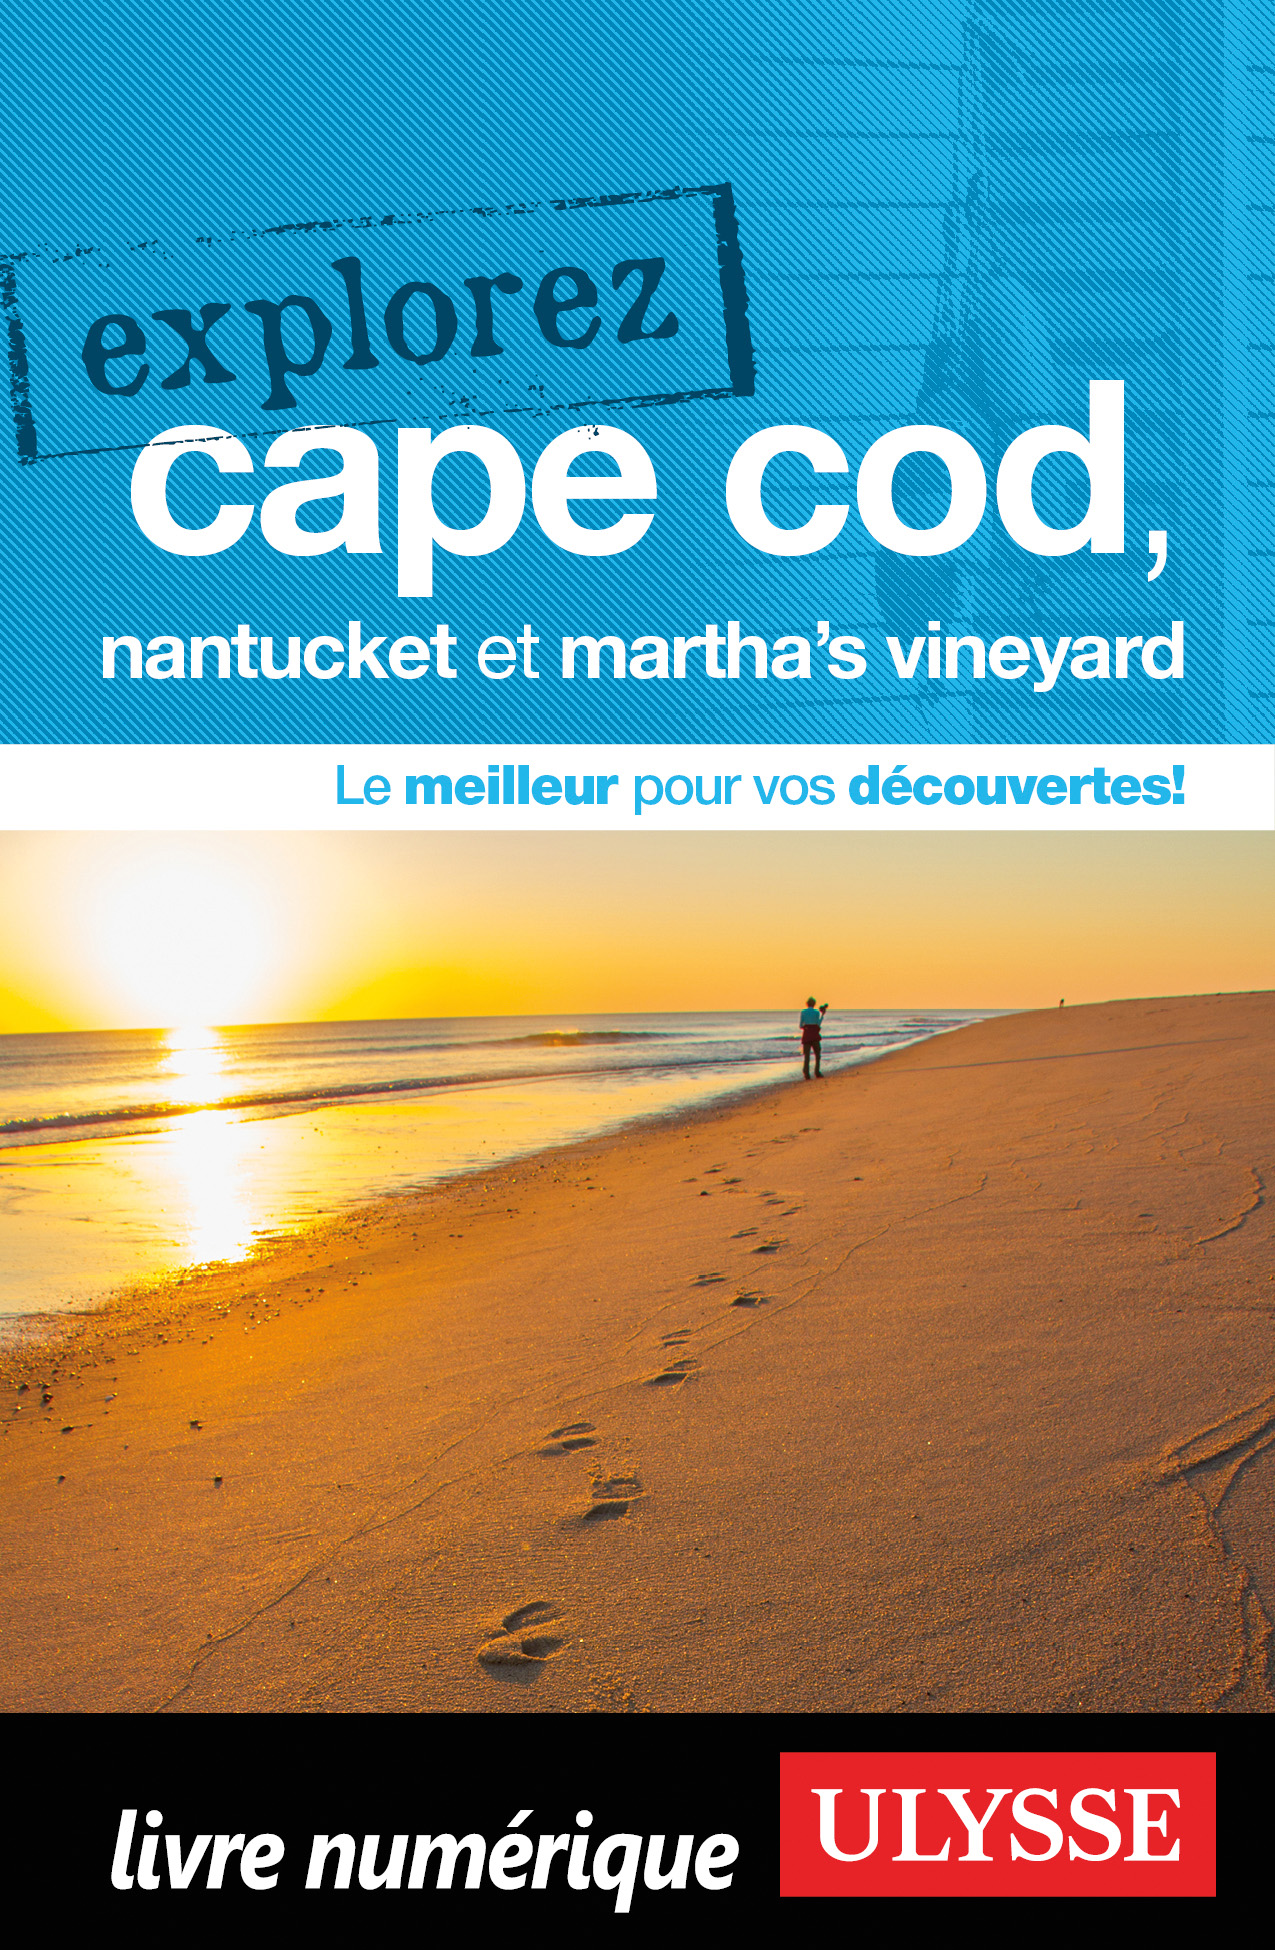 Vignette du livre Explorez Cape Cod, Nantucket et Martha's Vineyard - Louise Gaboury